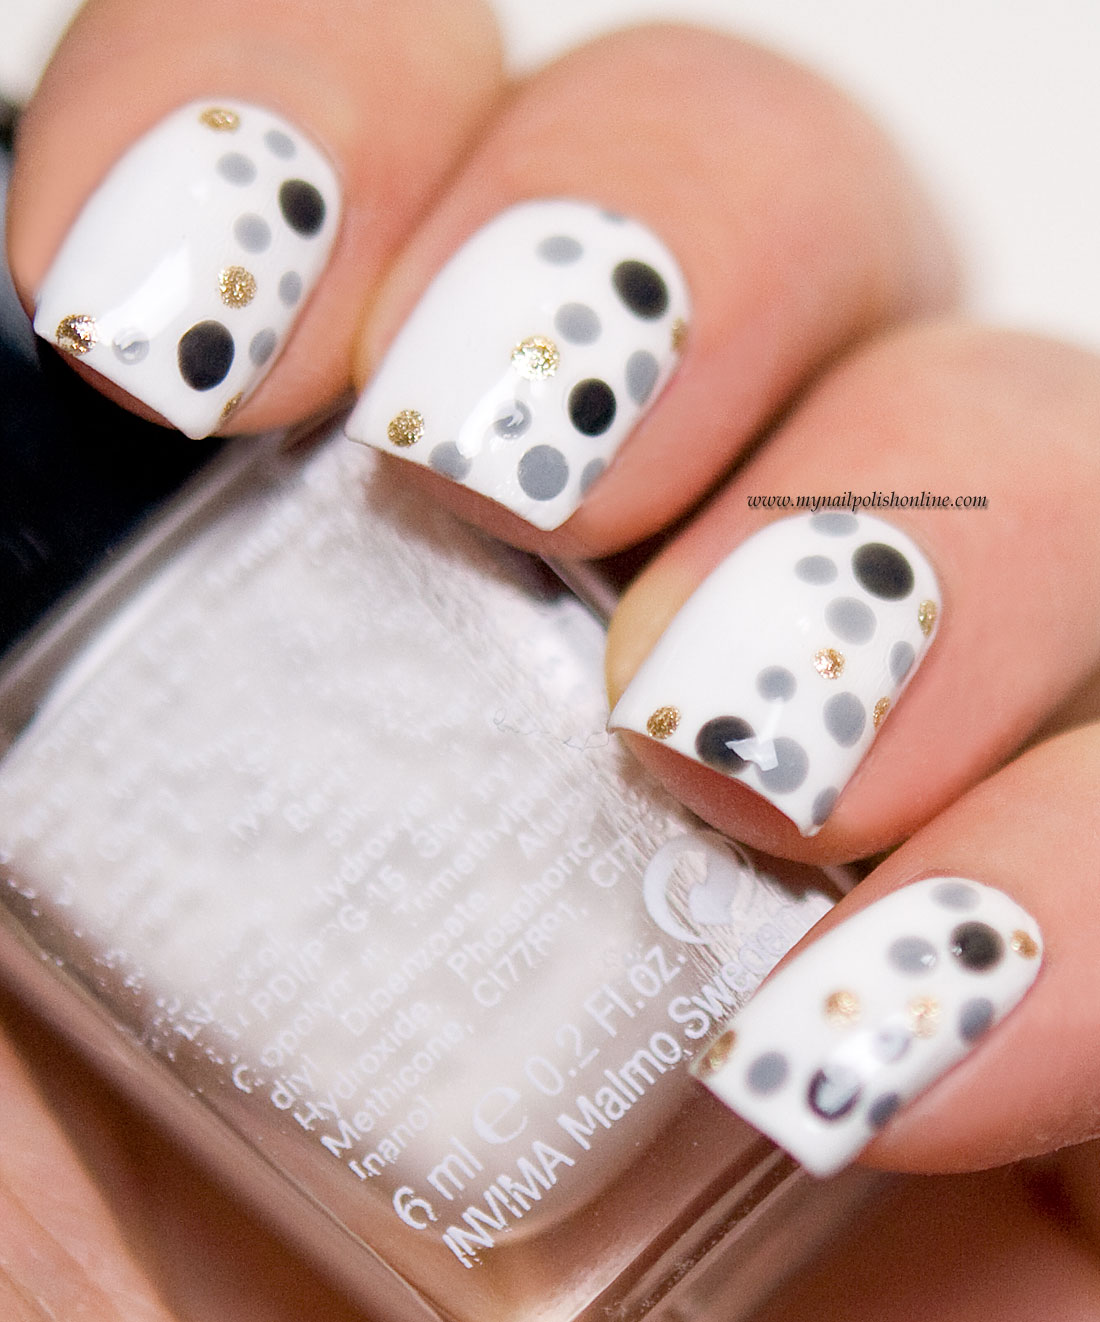 31DC2015 - Day11 Polka Dots